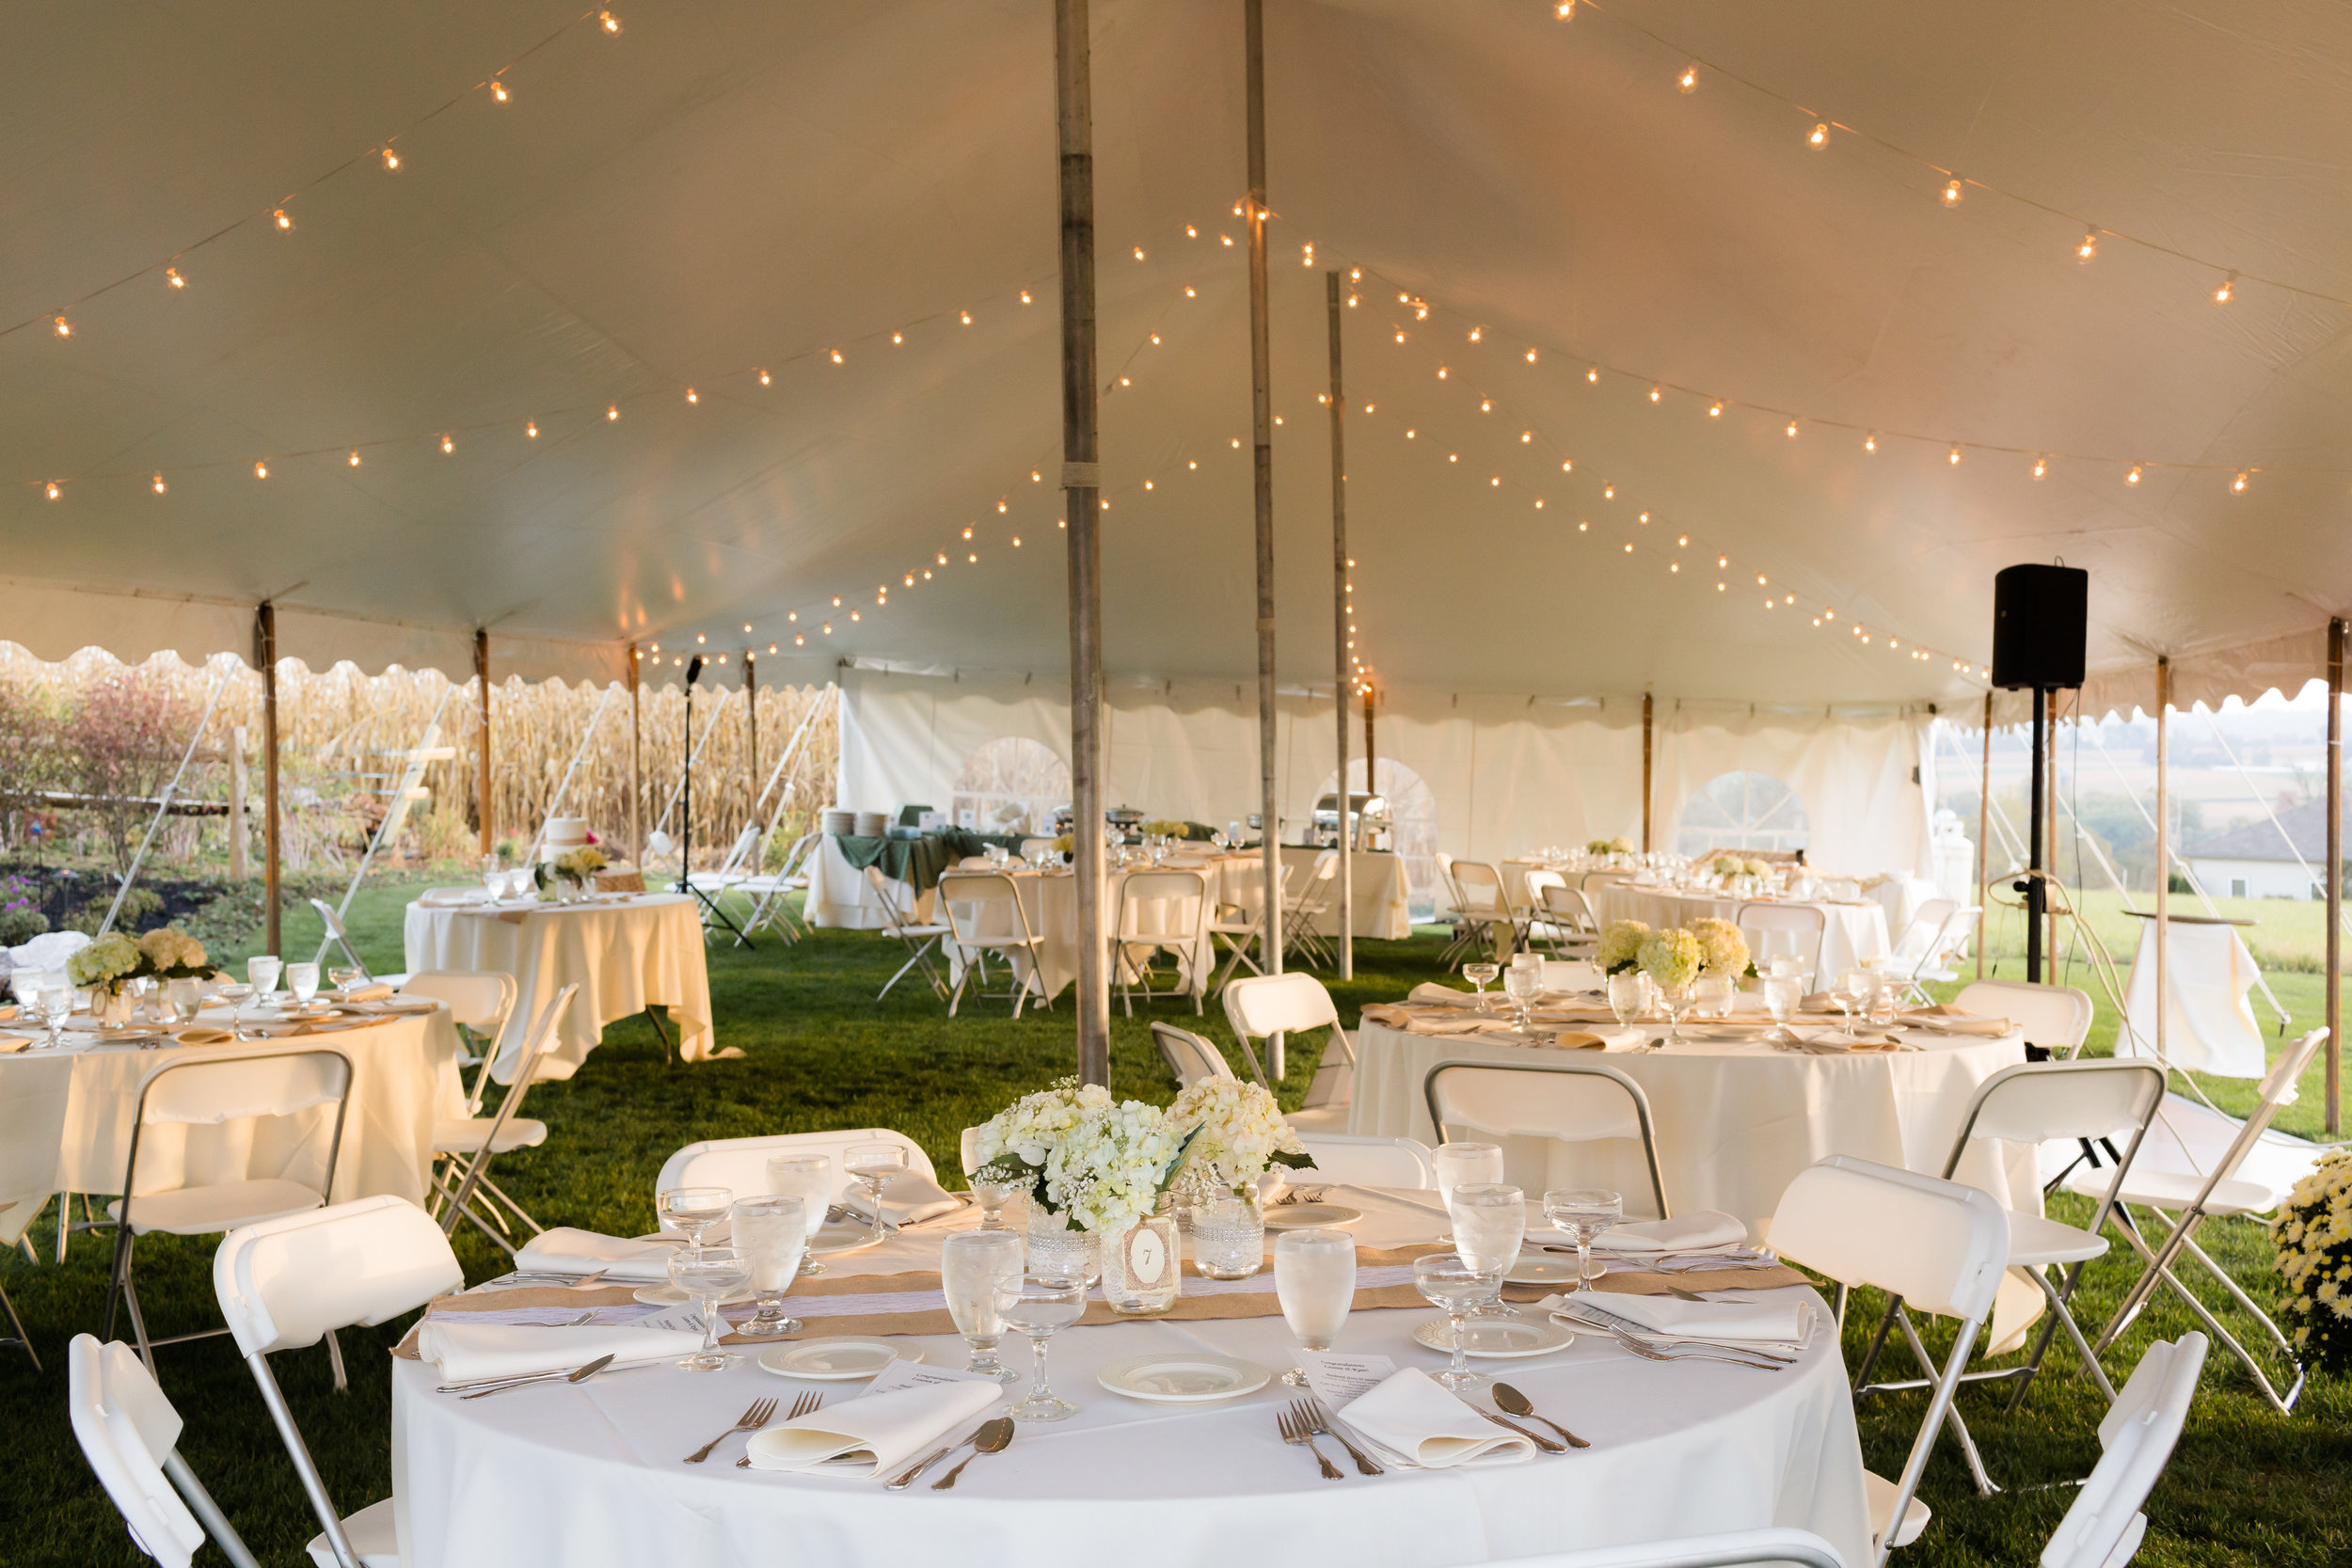 Pole tents, cafe lighting, tables and chairs to rent for your tent event